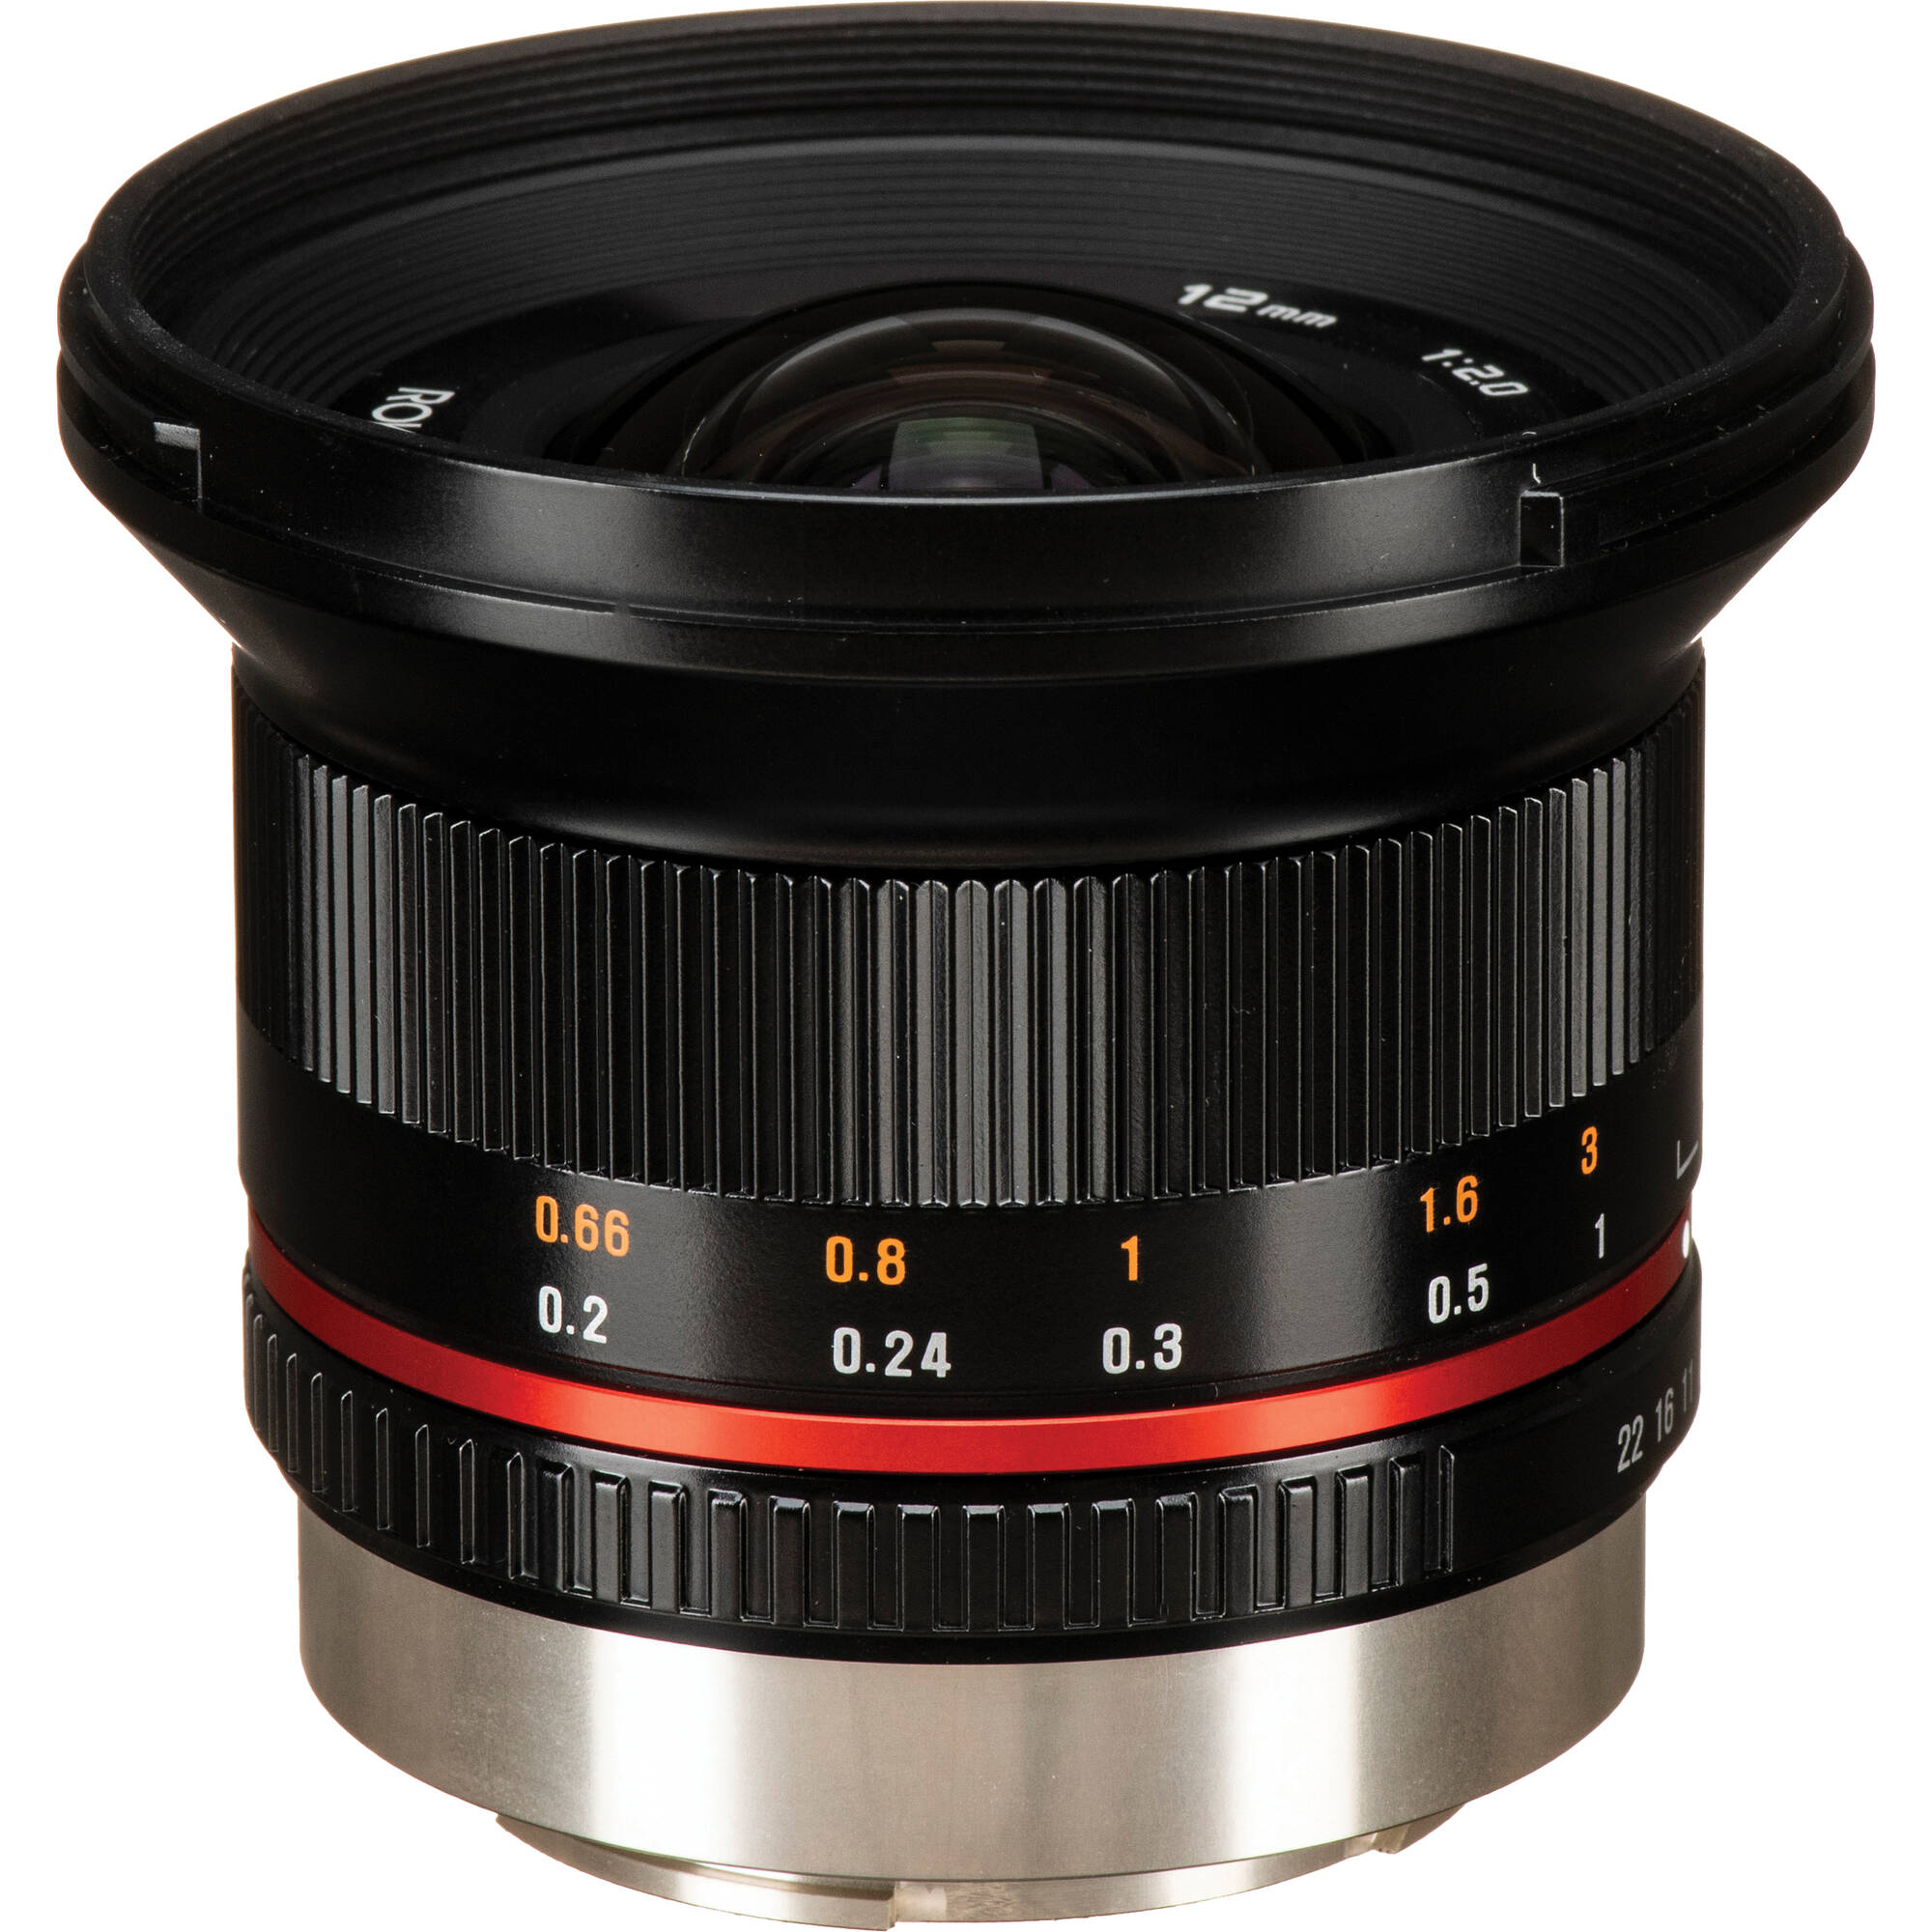 Rokinon 12mm f2.0 NCS CS Lens for Fujifilm X Mount (Black)